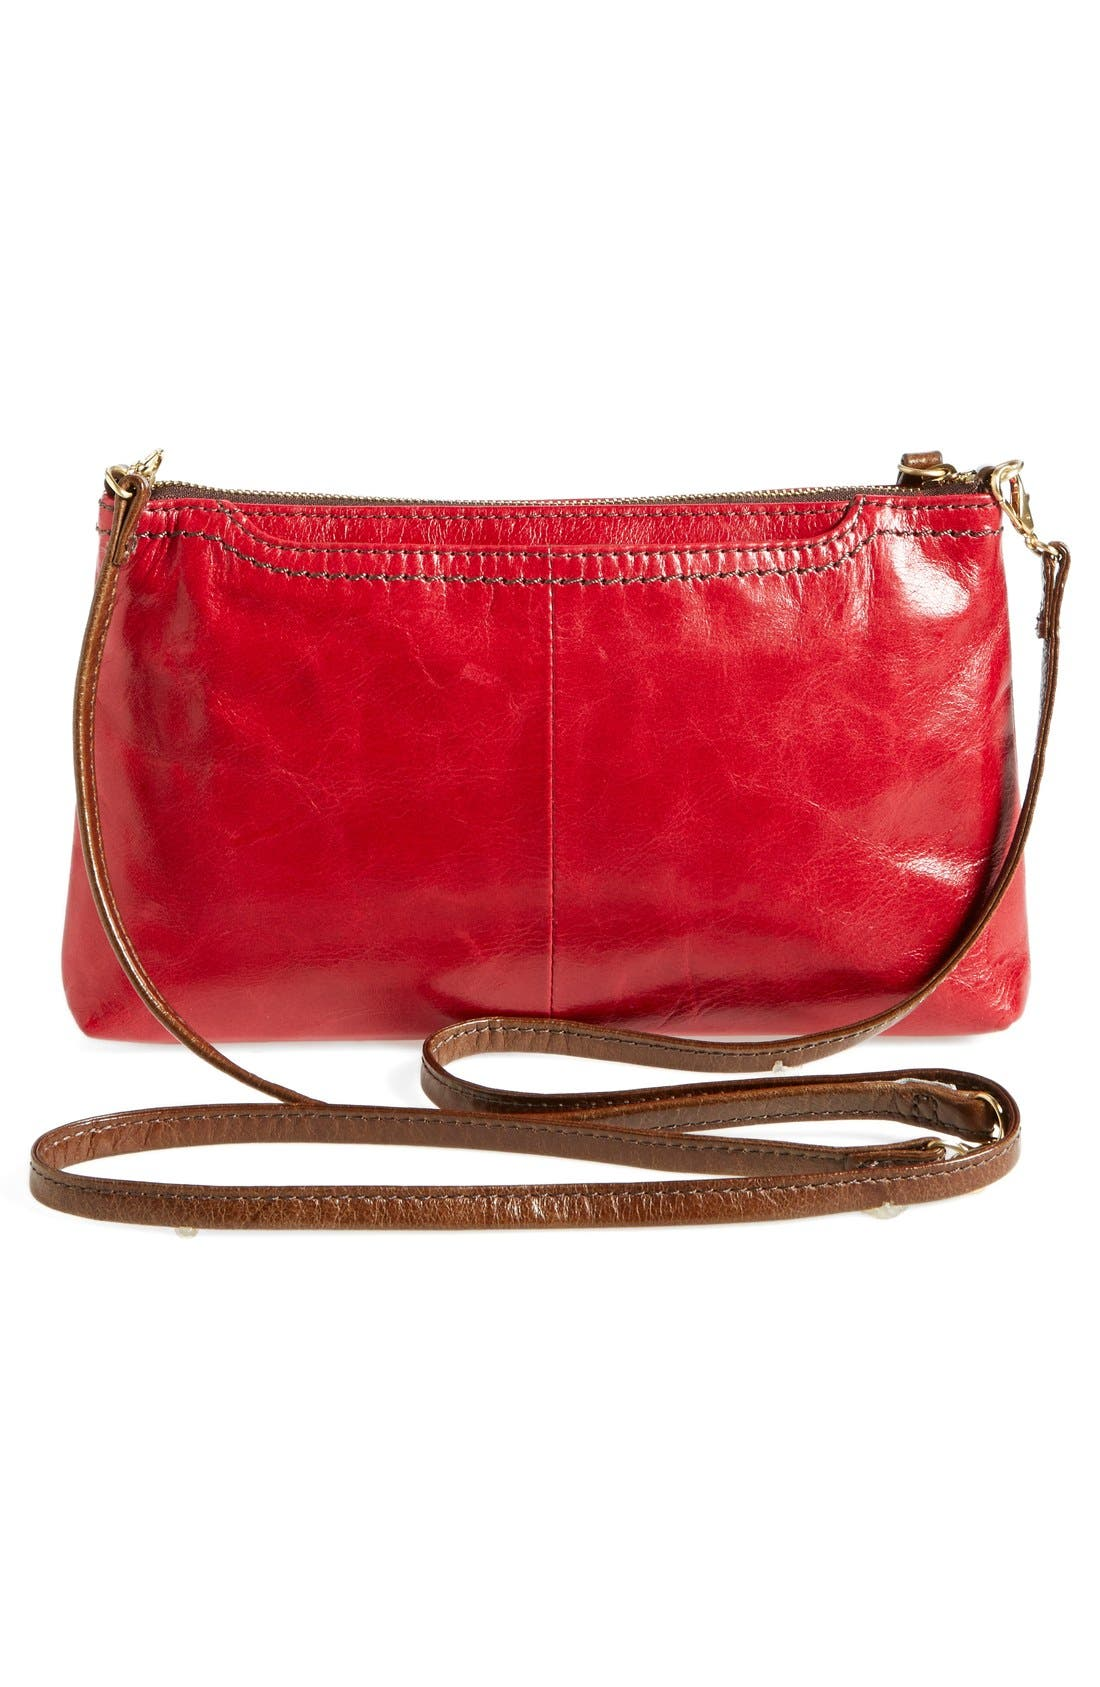 'Darcy' Leather Crossbody Bag,                             Alternate thumbnail 85, color,